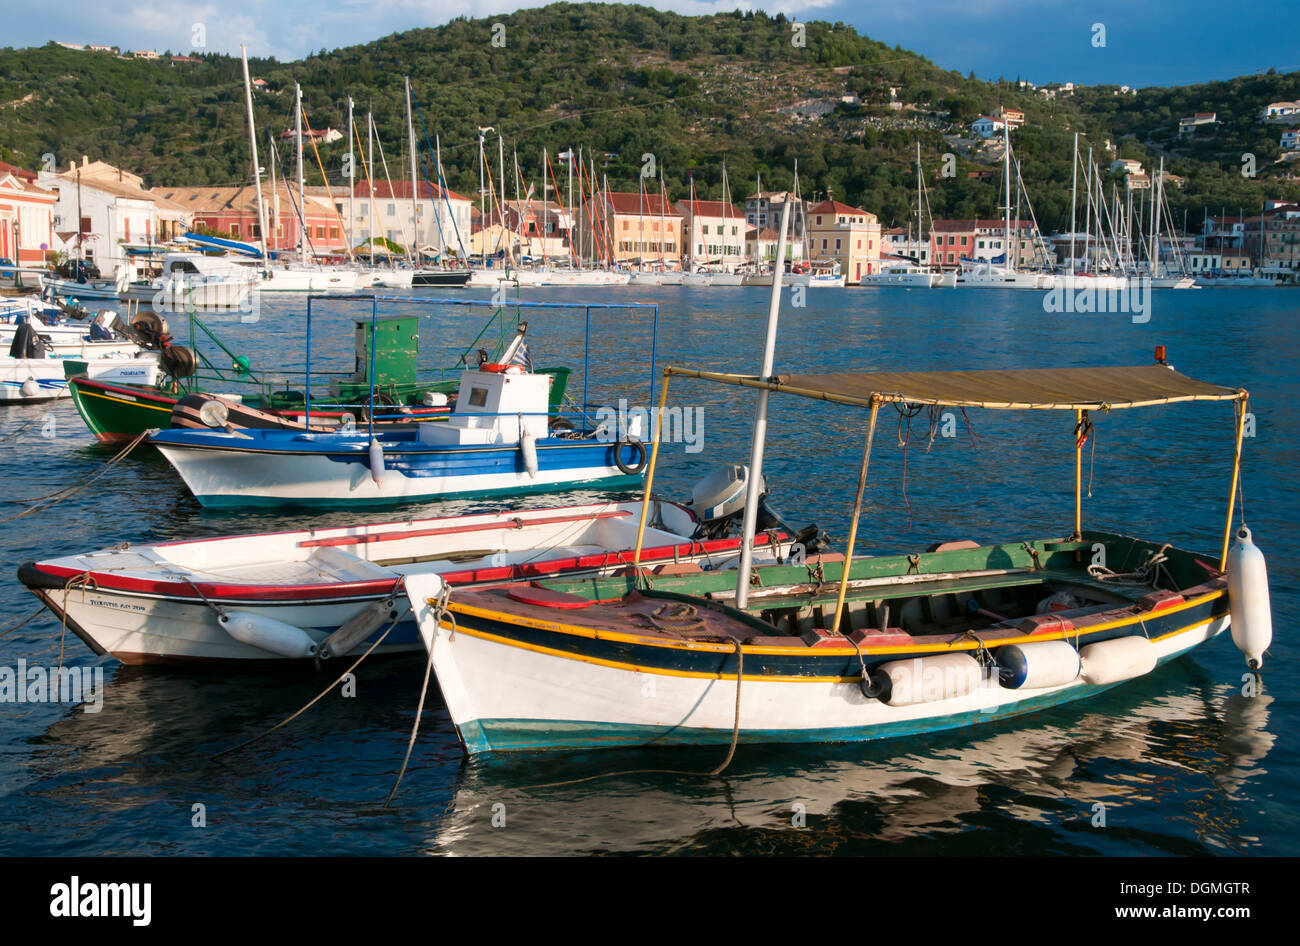 Fishing boats in Gaios harbour. - Stock Image